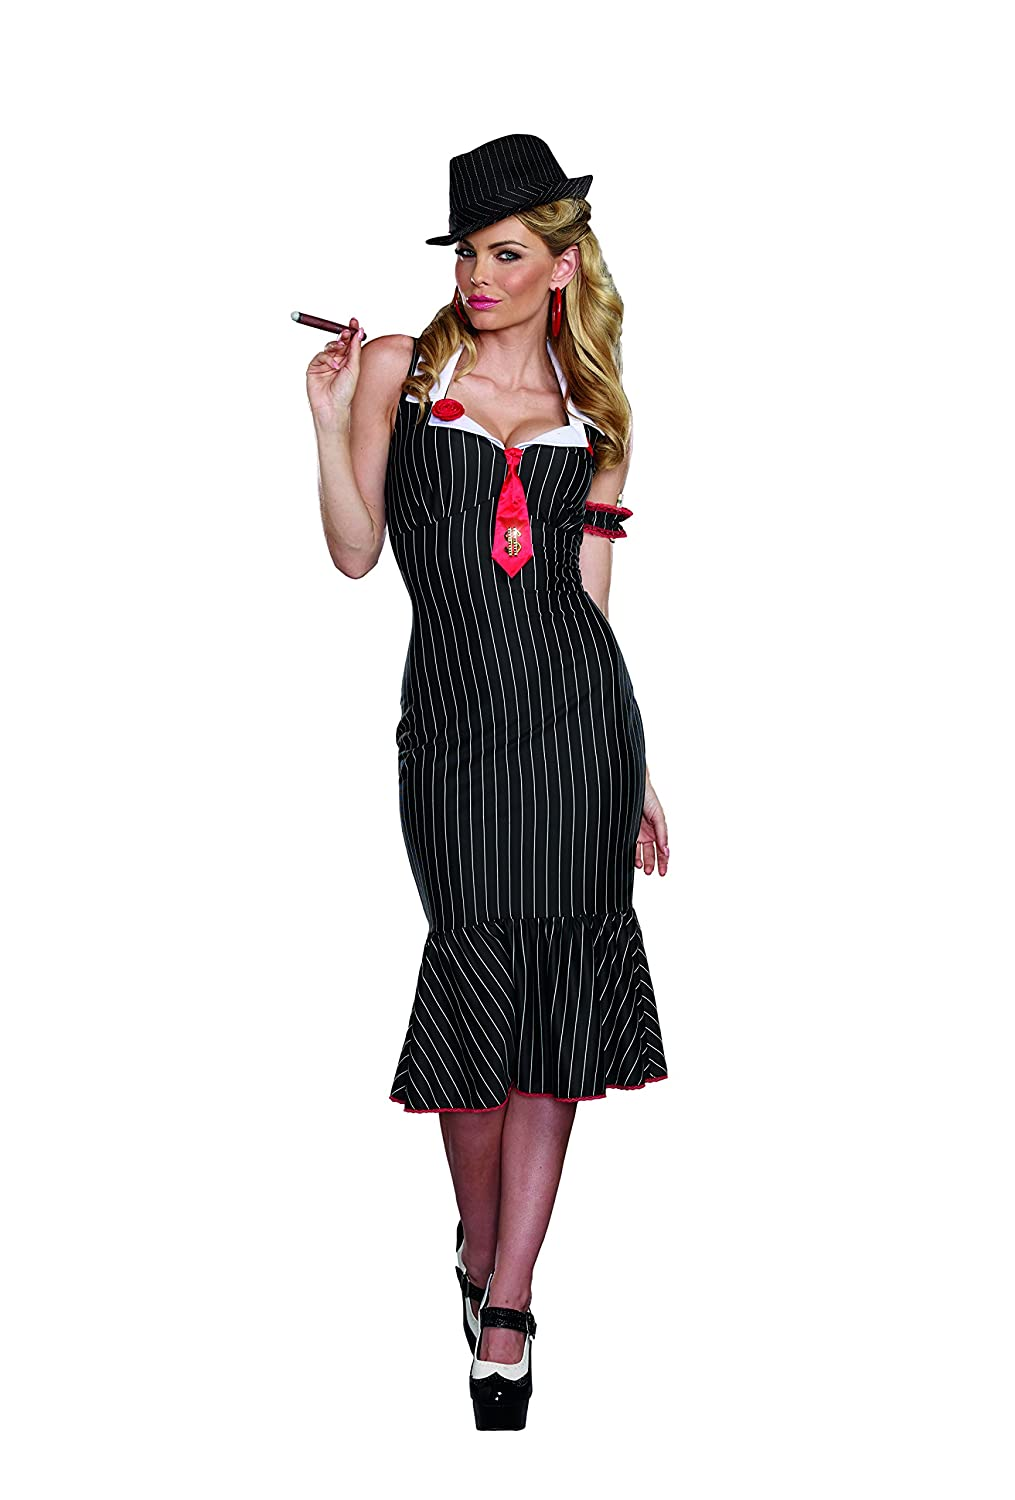 Roaring 20s Costumes- Flapper Costumes, Gangster Costumes Dreamgirl Womens Deadly Dames Pinstripe Gangster Costume $67.00 AT vintagedancer.com